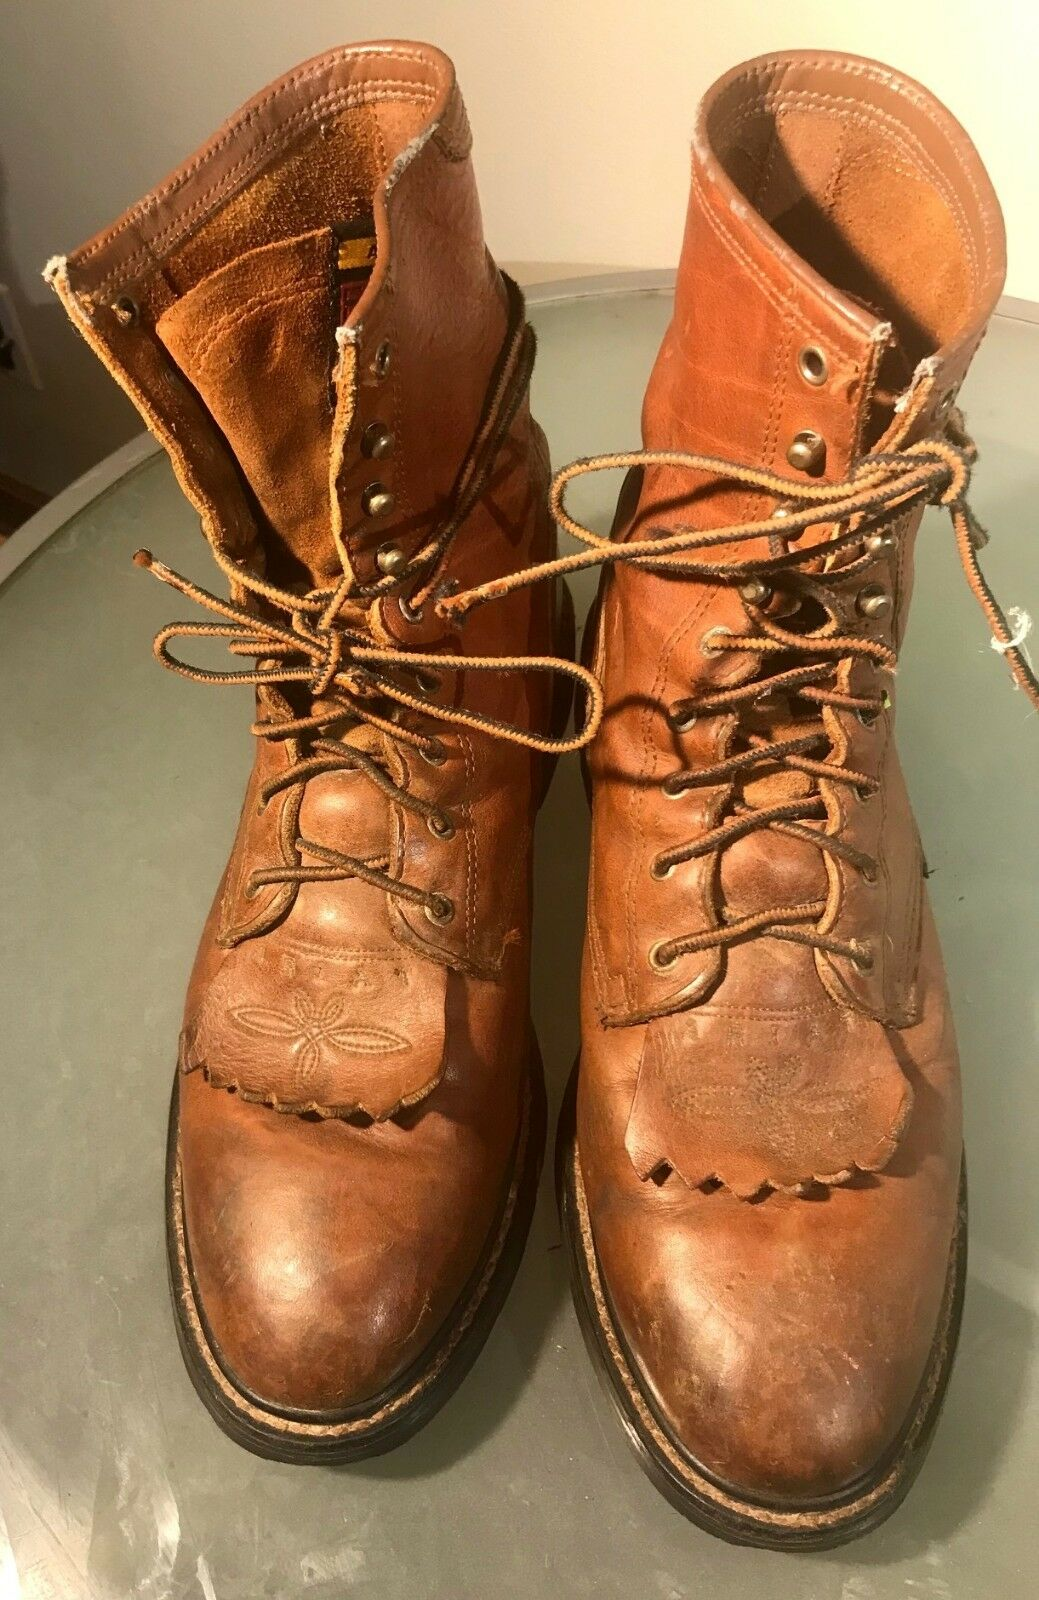 ARIAT The New Breed of Boot Oil-Resistant Duratread Brown Leather Roper Boot 11D